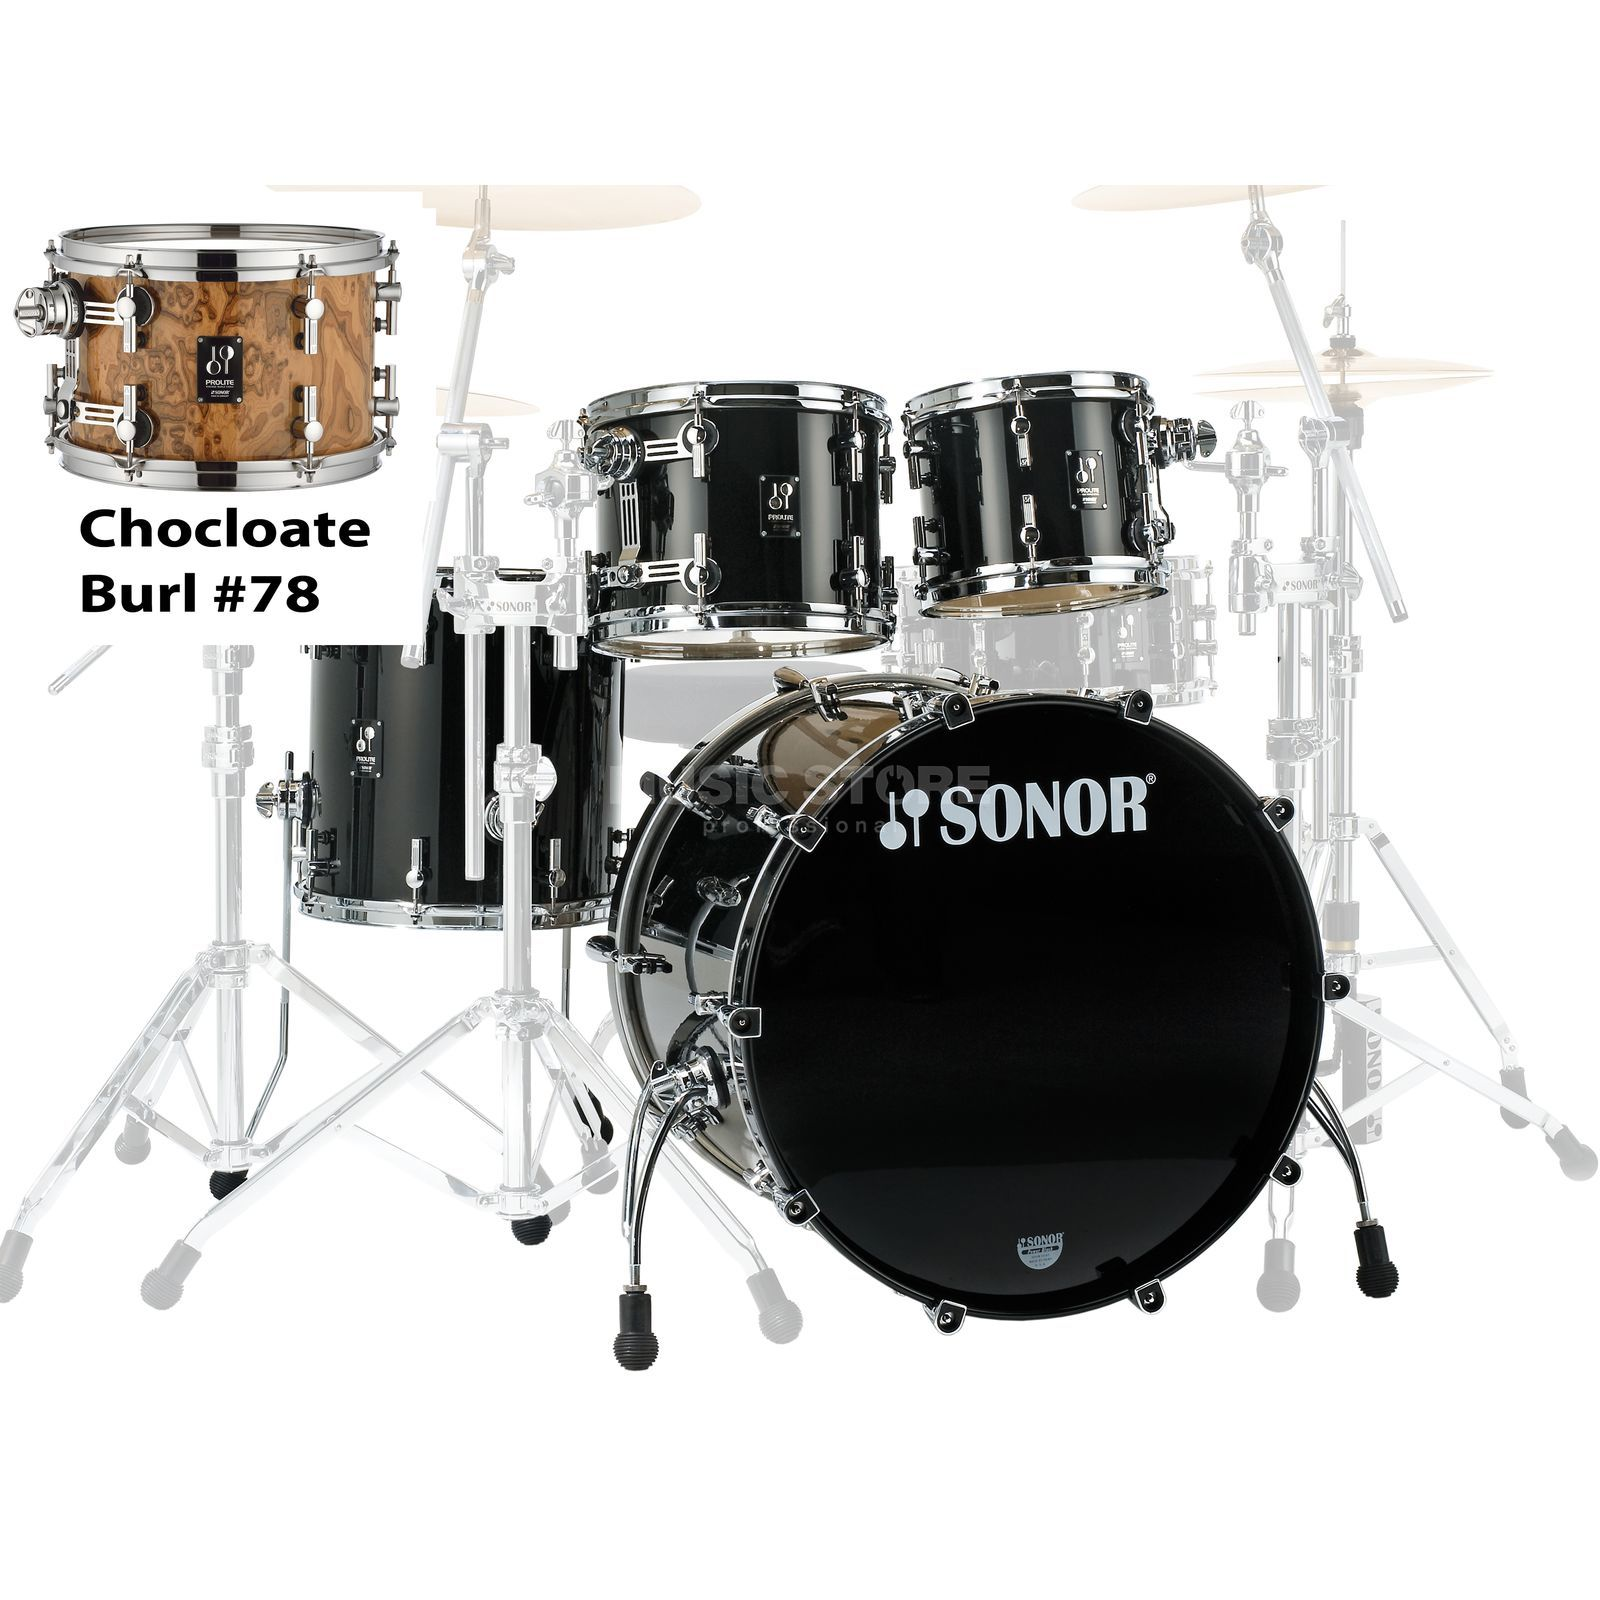 Sonor ProLite Studio 1, Chocolate Burl #78 Produktbild